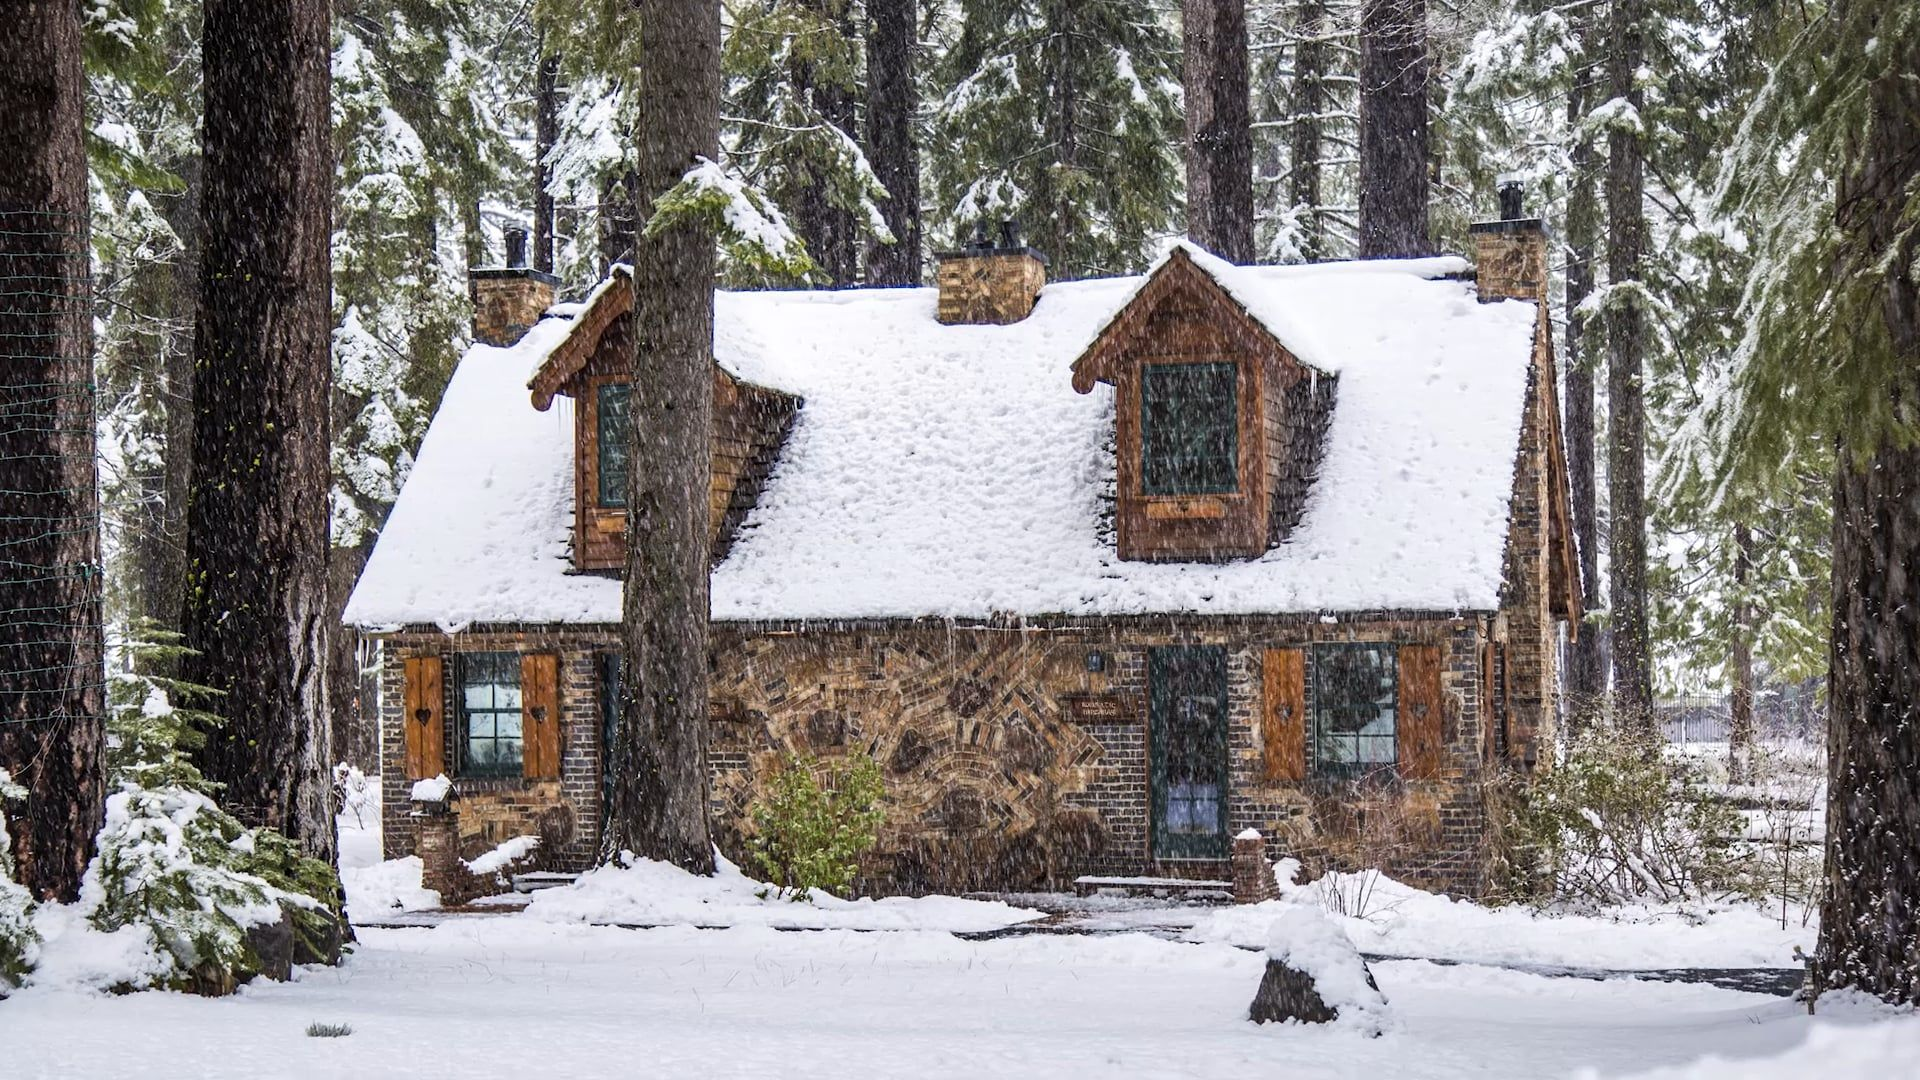 lake vacation in rentals heavenly estate luxury south states heavenlyestate cabin california cabins united retreats tahoe laketahoe